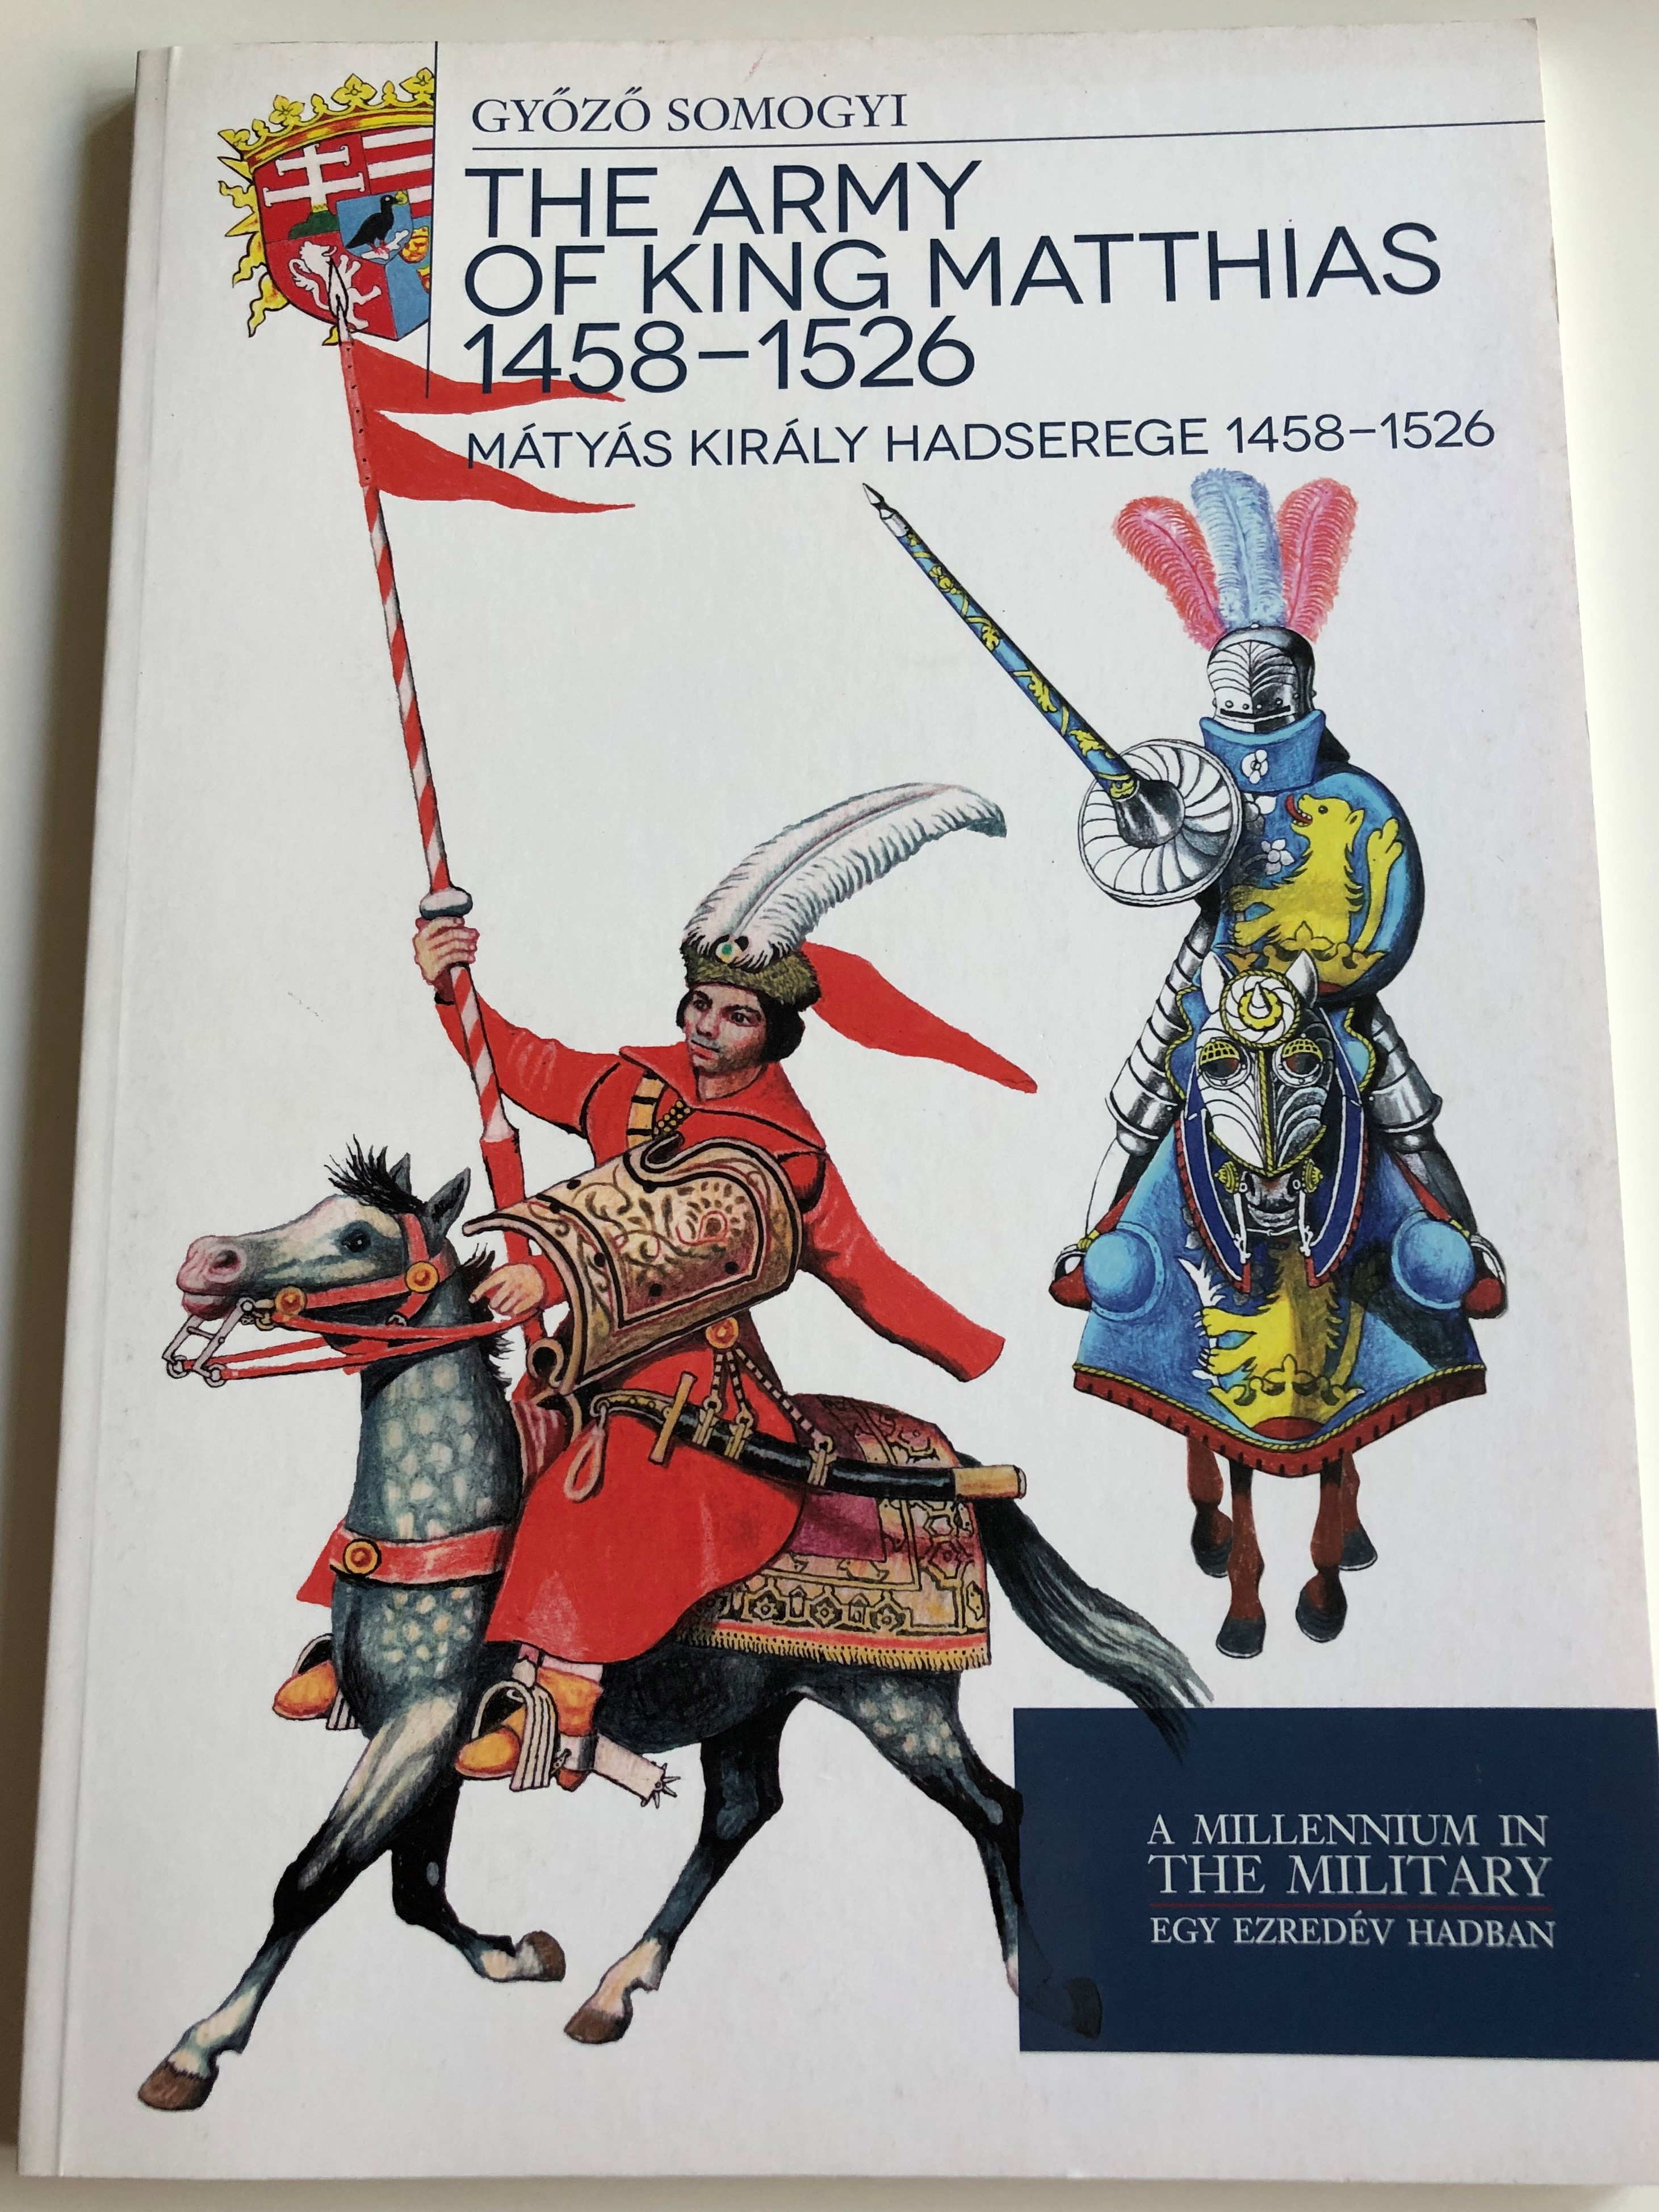 the-army-of-king-matthias-1458-1526-by-gy-z-somogyi-m-ty-s-kir-ly-hadserege-1458-1526-a-millenium-in-the-military-egy-ezred-v-hadban-paperback-2013-hm-zr-nyi-1-.jpg